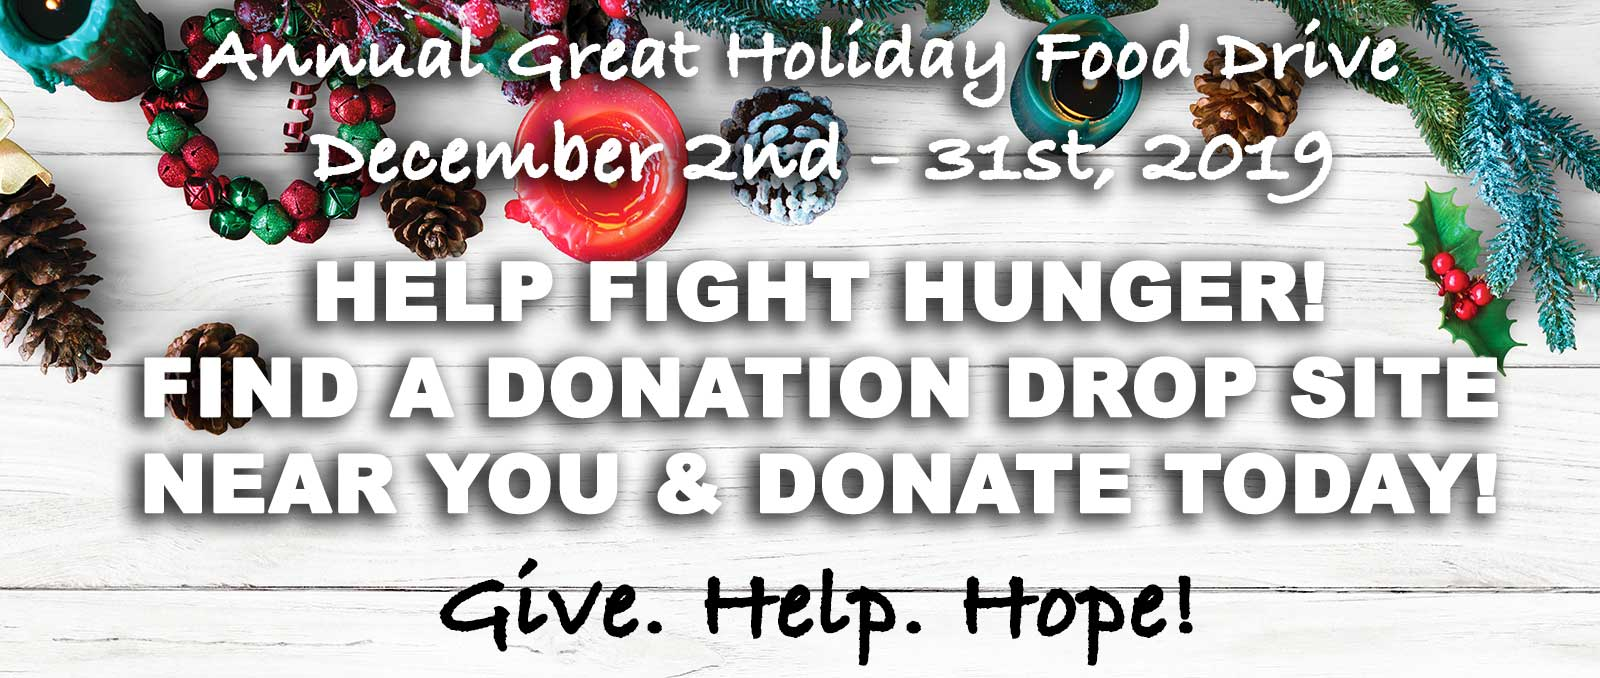 SIGN-UP TO BE A DROP SITE OR SPONSOR NOW! 12th Annual Great Holiday Food Drive